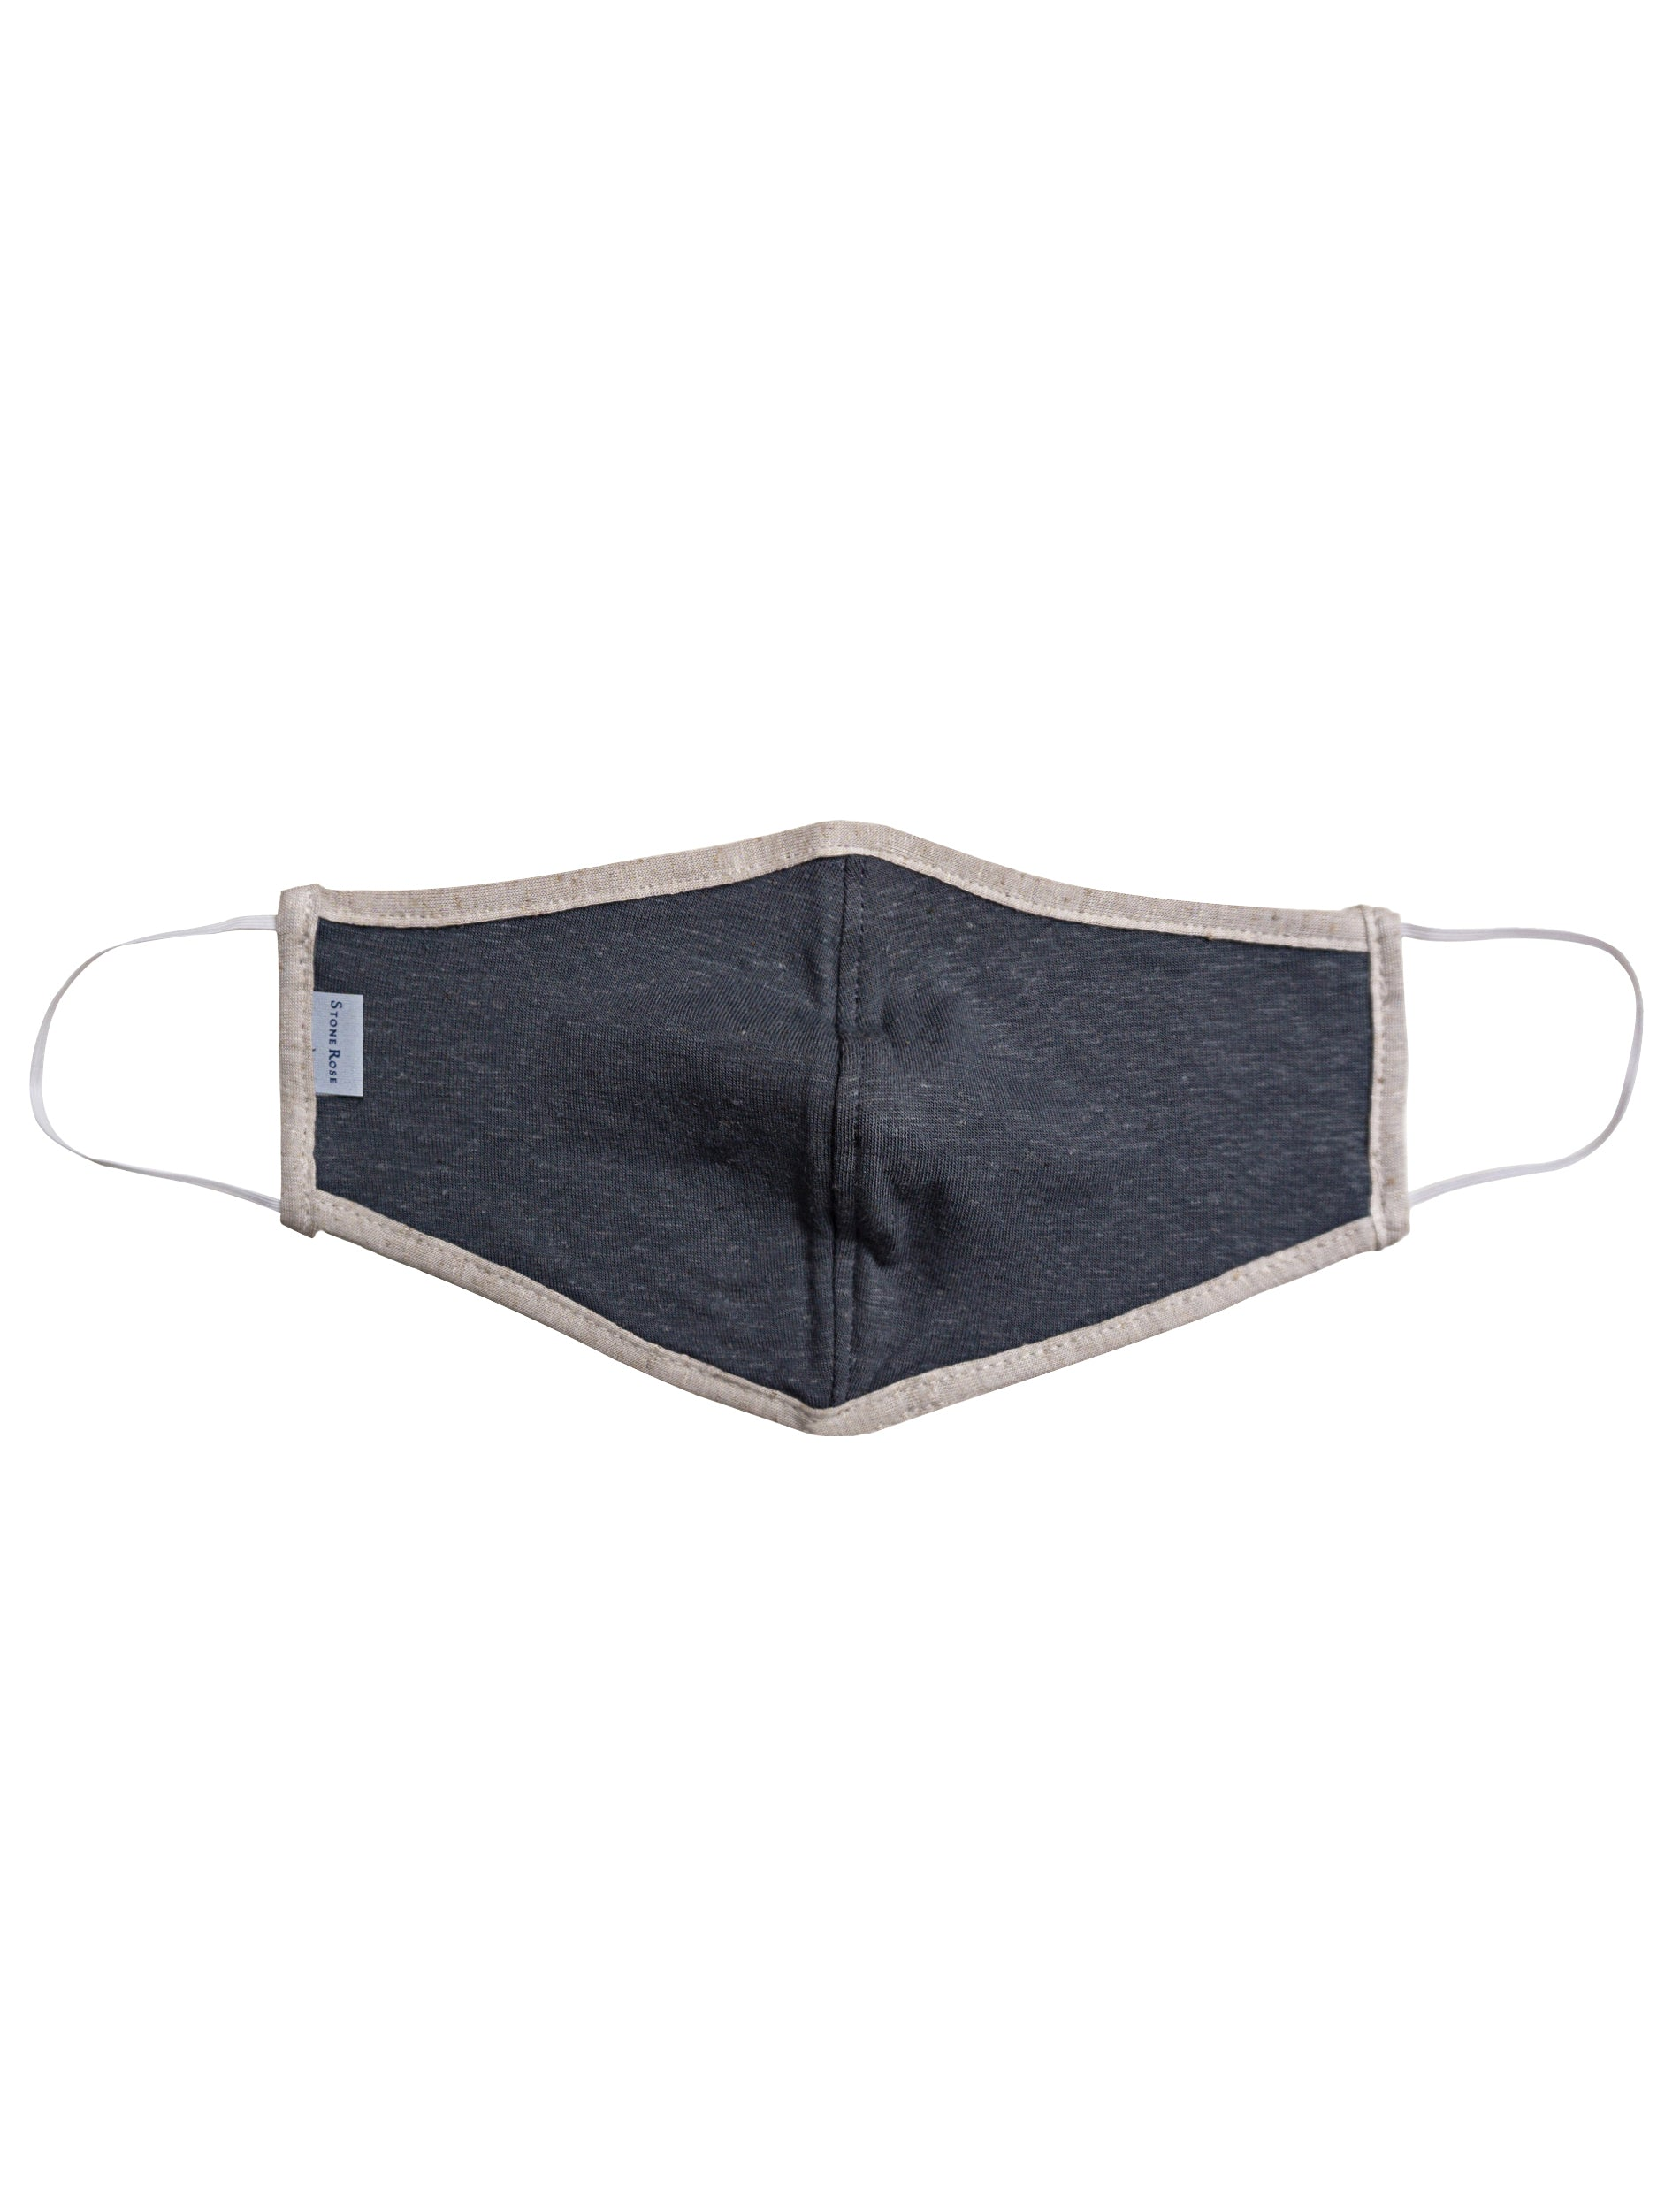 Grey & Beige - Reusable Lighweight Face Mask